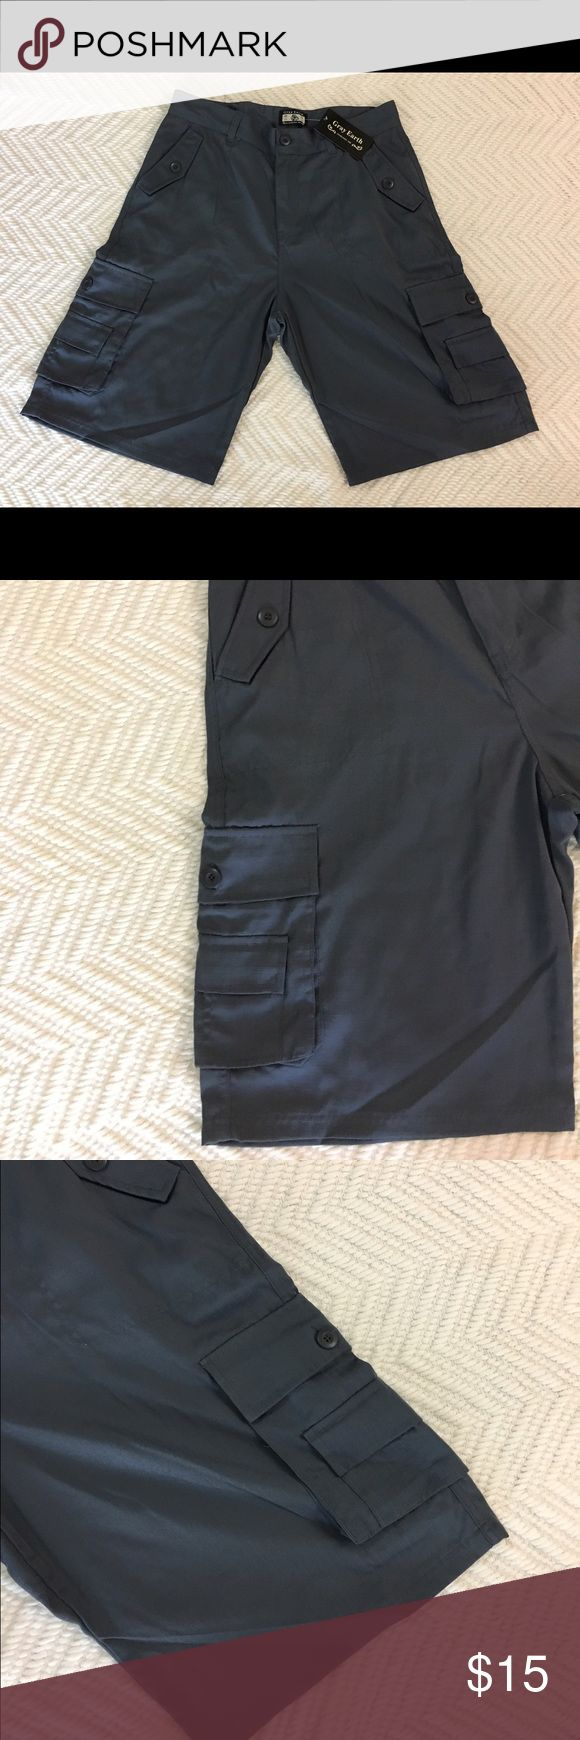 Mens Cargo Multi Pocket Gray Grey Shorts 34 New Size 34. New with tag. Please see all my pictures for details Gray Earth Shorts Cargo